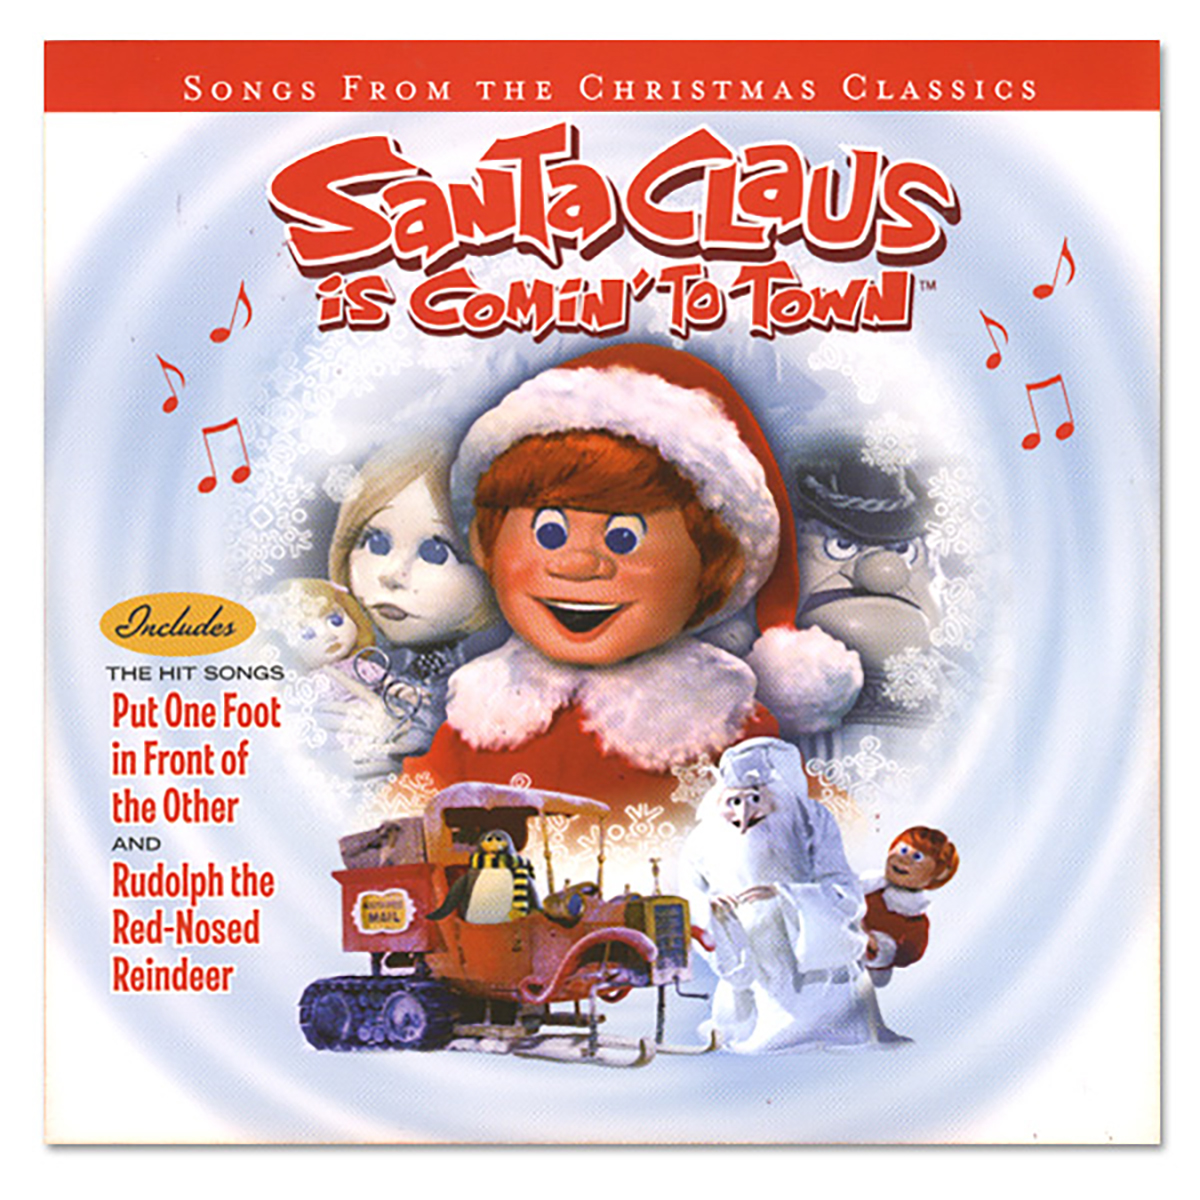 Songs from the Christmas Classics: Santa Claus Is Comin' To Town CD | Shop the The Original ...